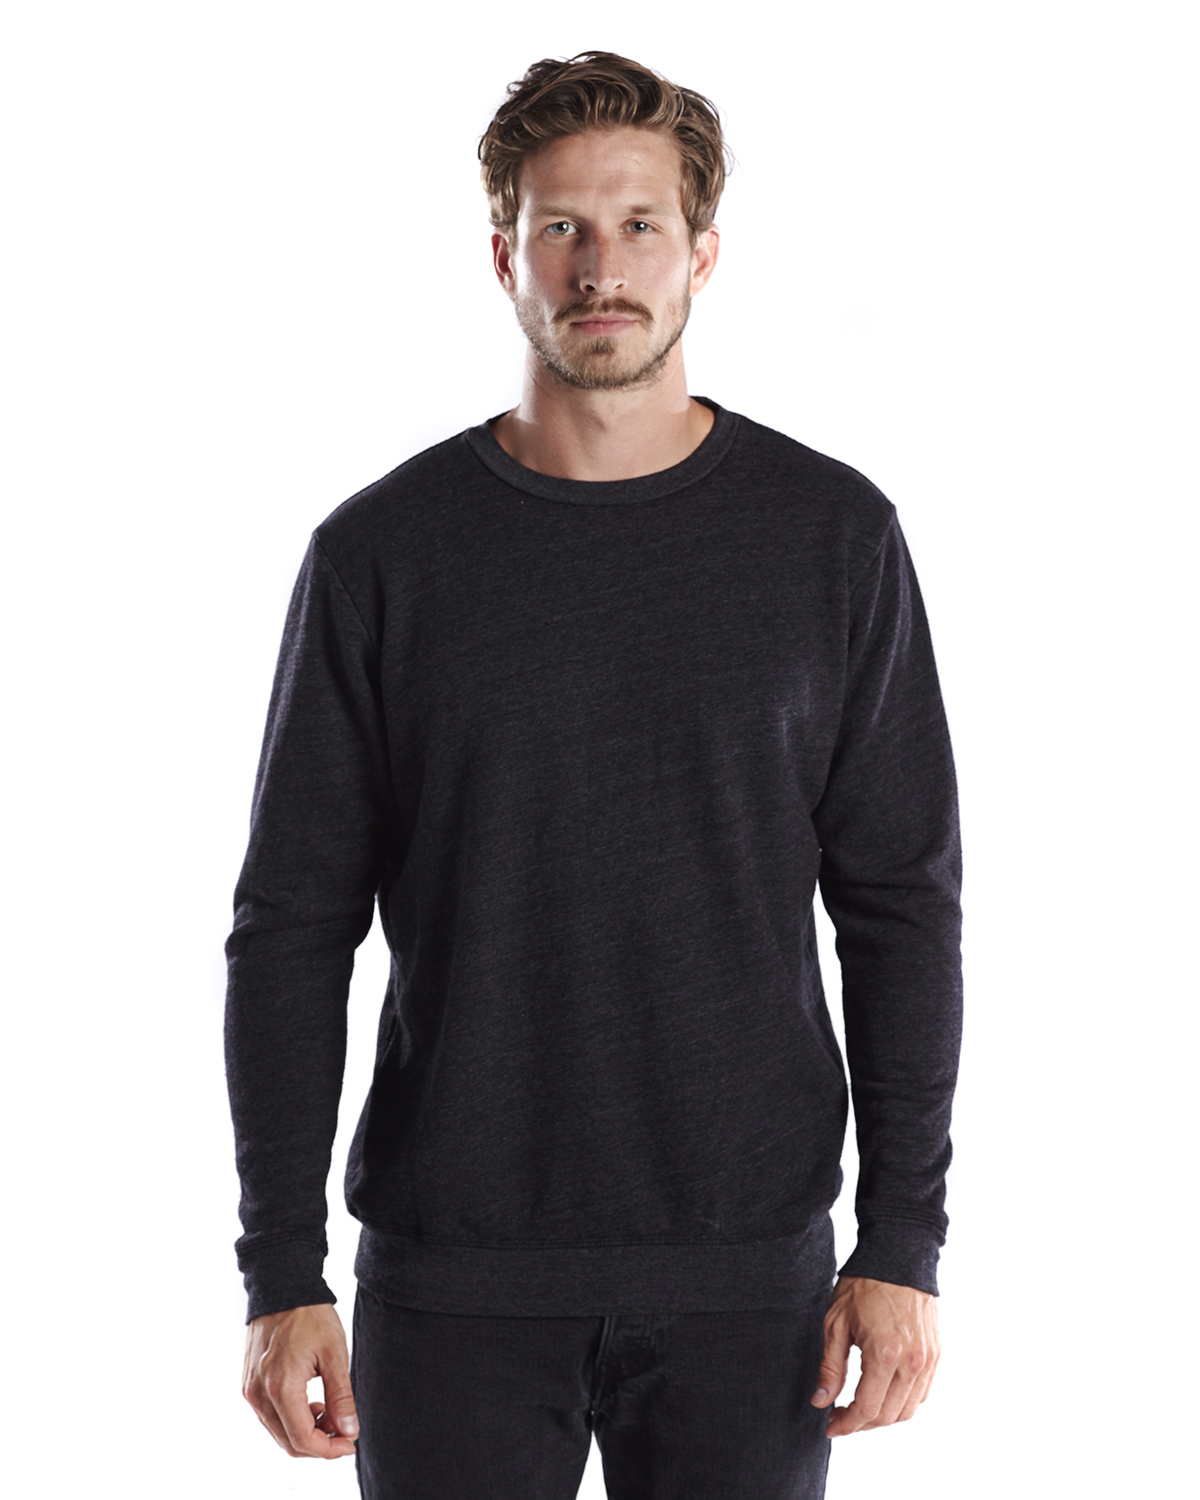 US Blanks US2211G - Unisex Heavyweight Loop Terry Triblend Long-Sleeve Crew